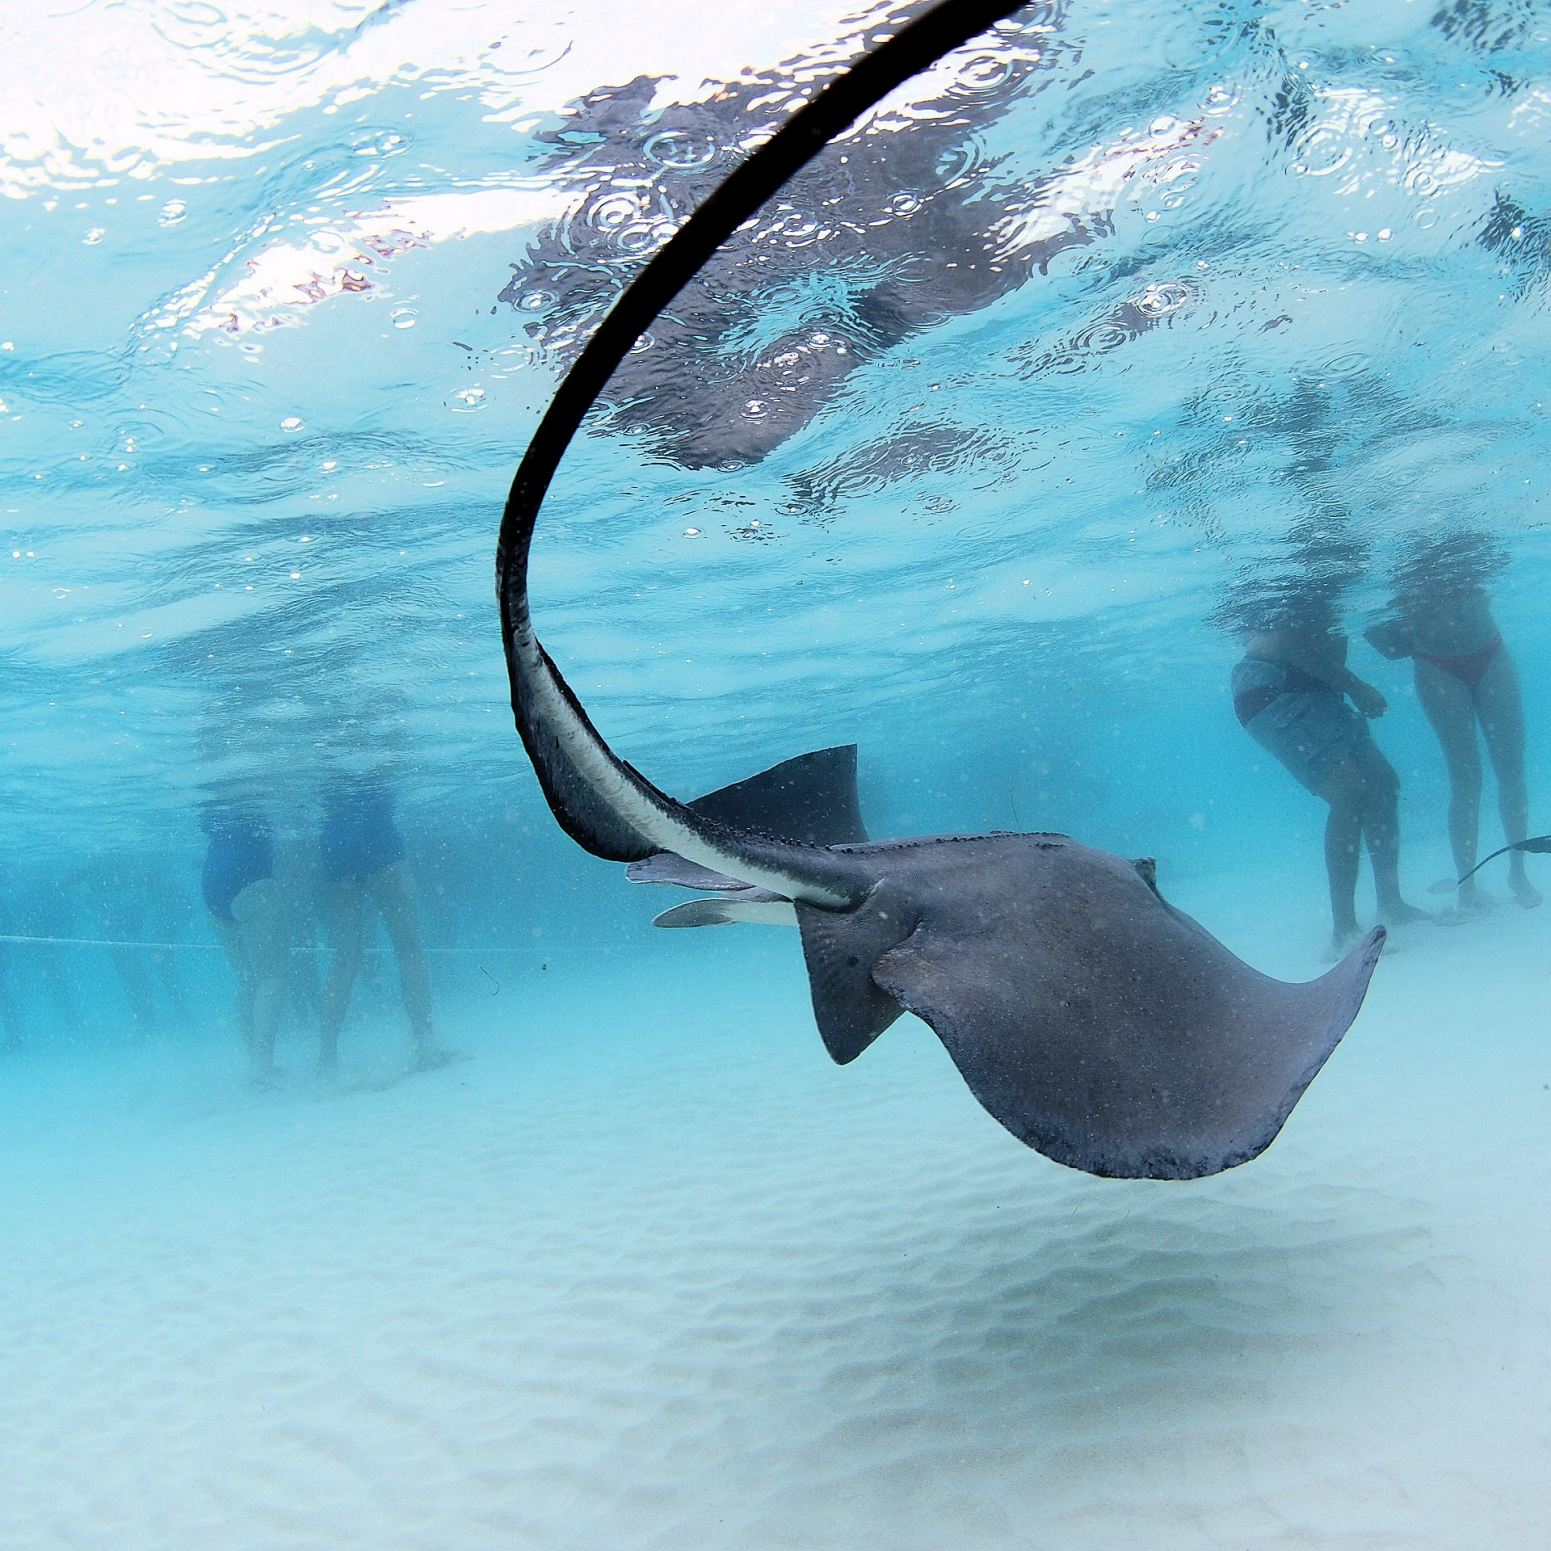 Stingray City in the Cayman Islands